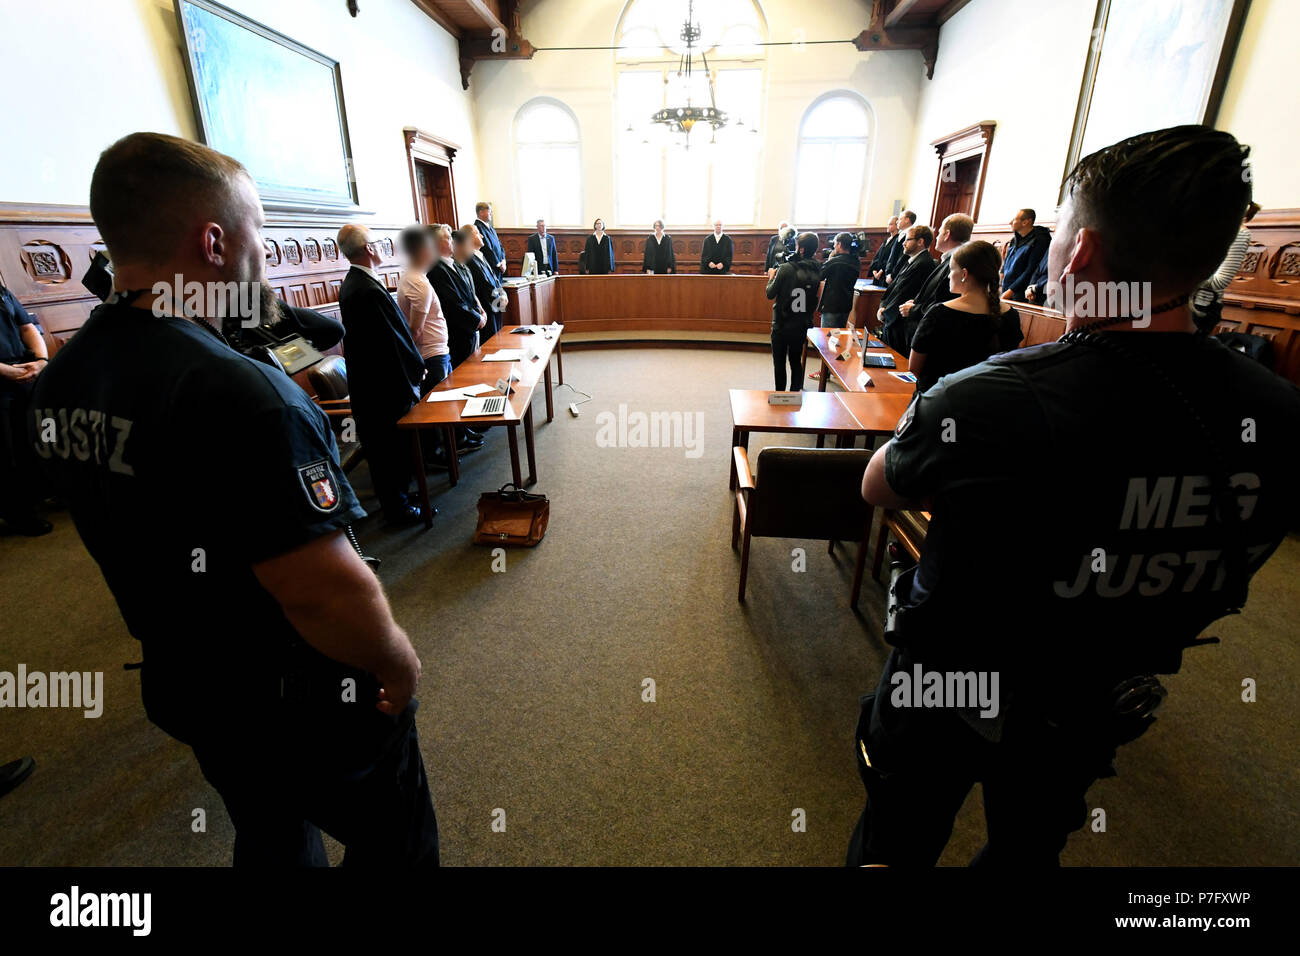 Flensburg, Germany. 06th July, 2018. The two defendants (3-L and 5-L) indicted for murder standing in the dock with their lawyers. The district court is pronouncing their verdict in the murder trial against the two 20-year-olds, who woke up a coeval in the night before Easter Sunday 2017 and stabbed him by the front door. Credit: Carsten Rehder/dpa/Alamy Live News - Stock Image